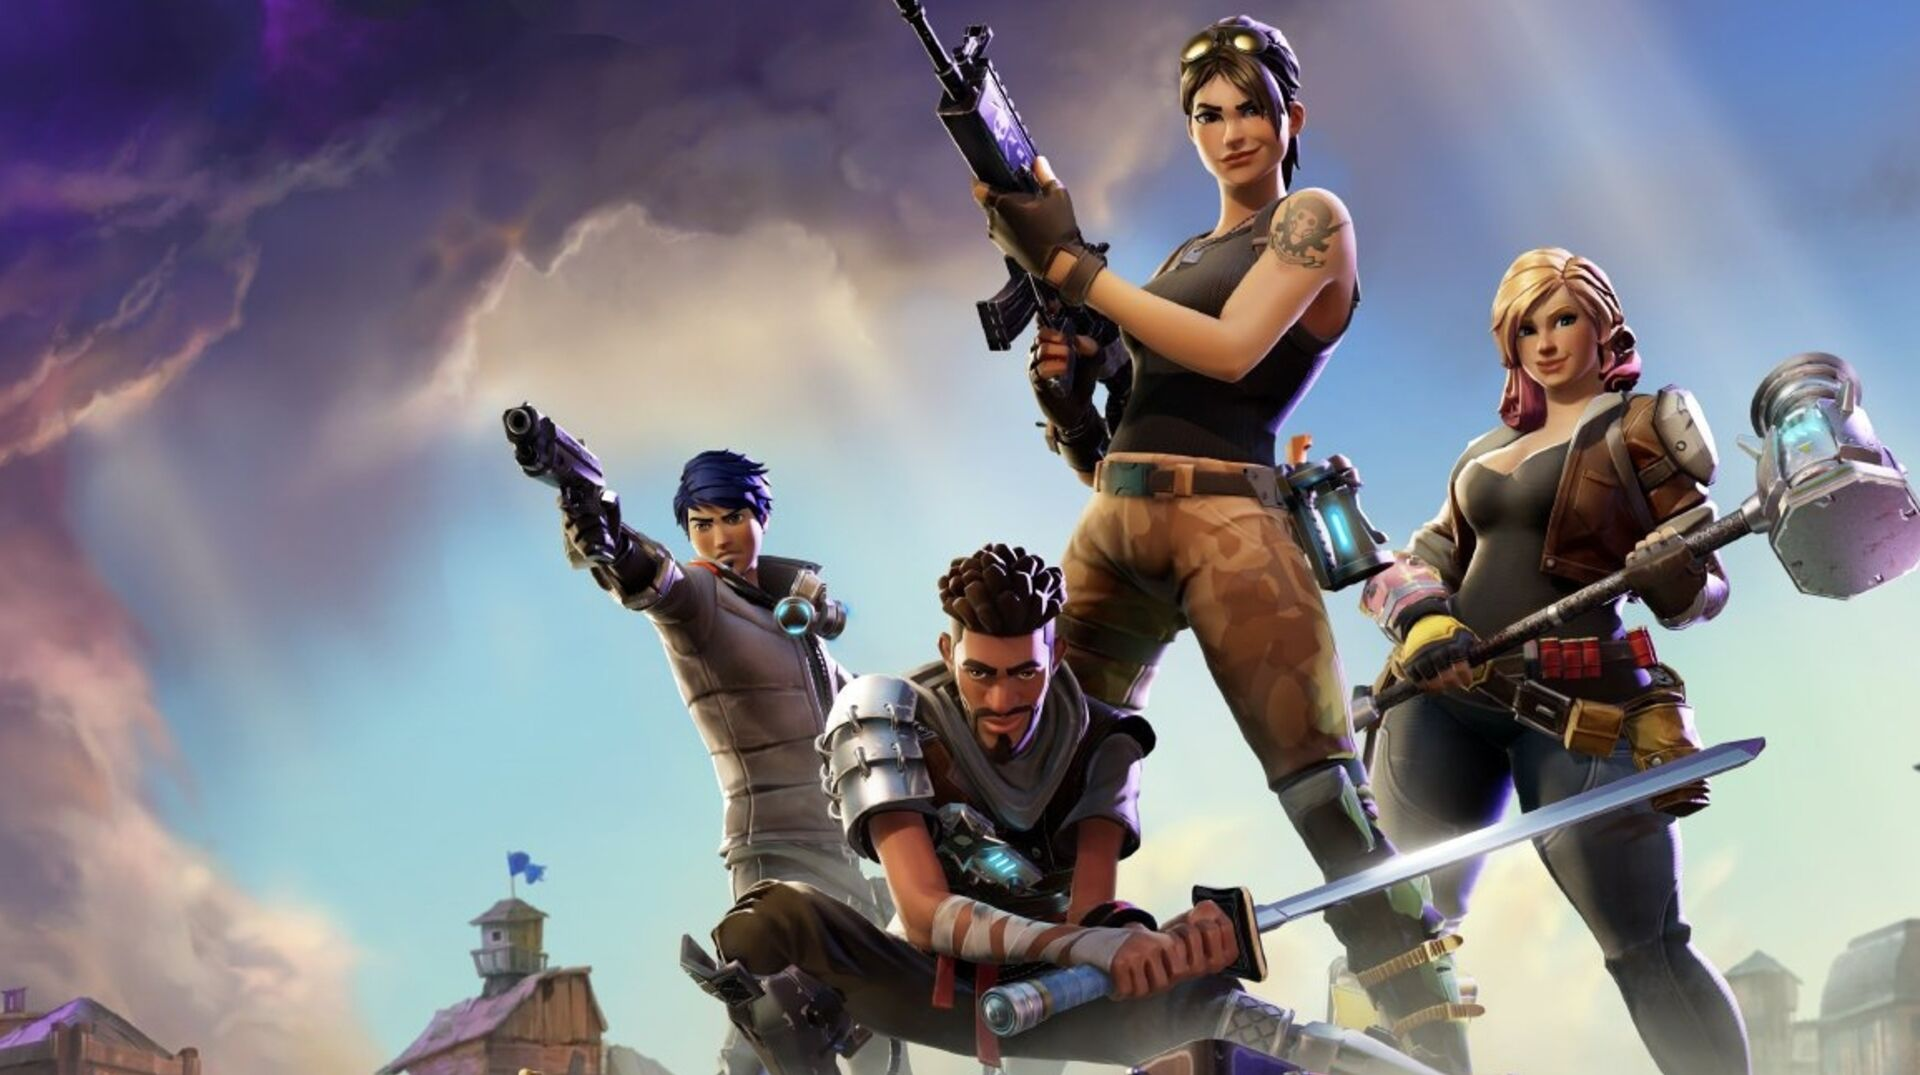 The rumours are true - Fortnite on Android doesn't use Google Play